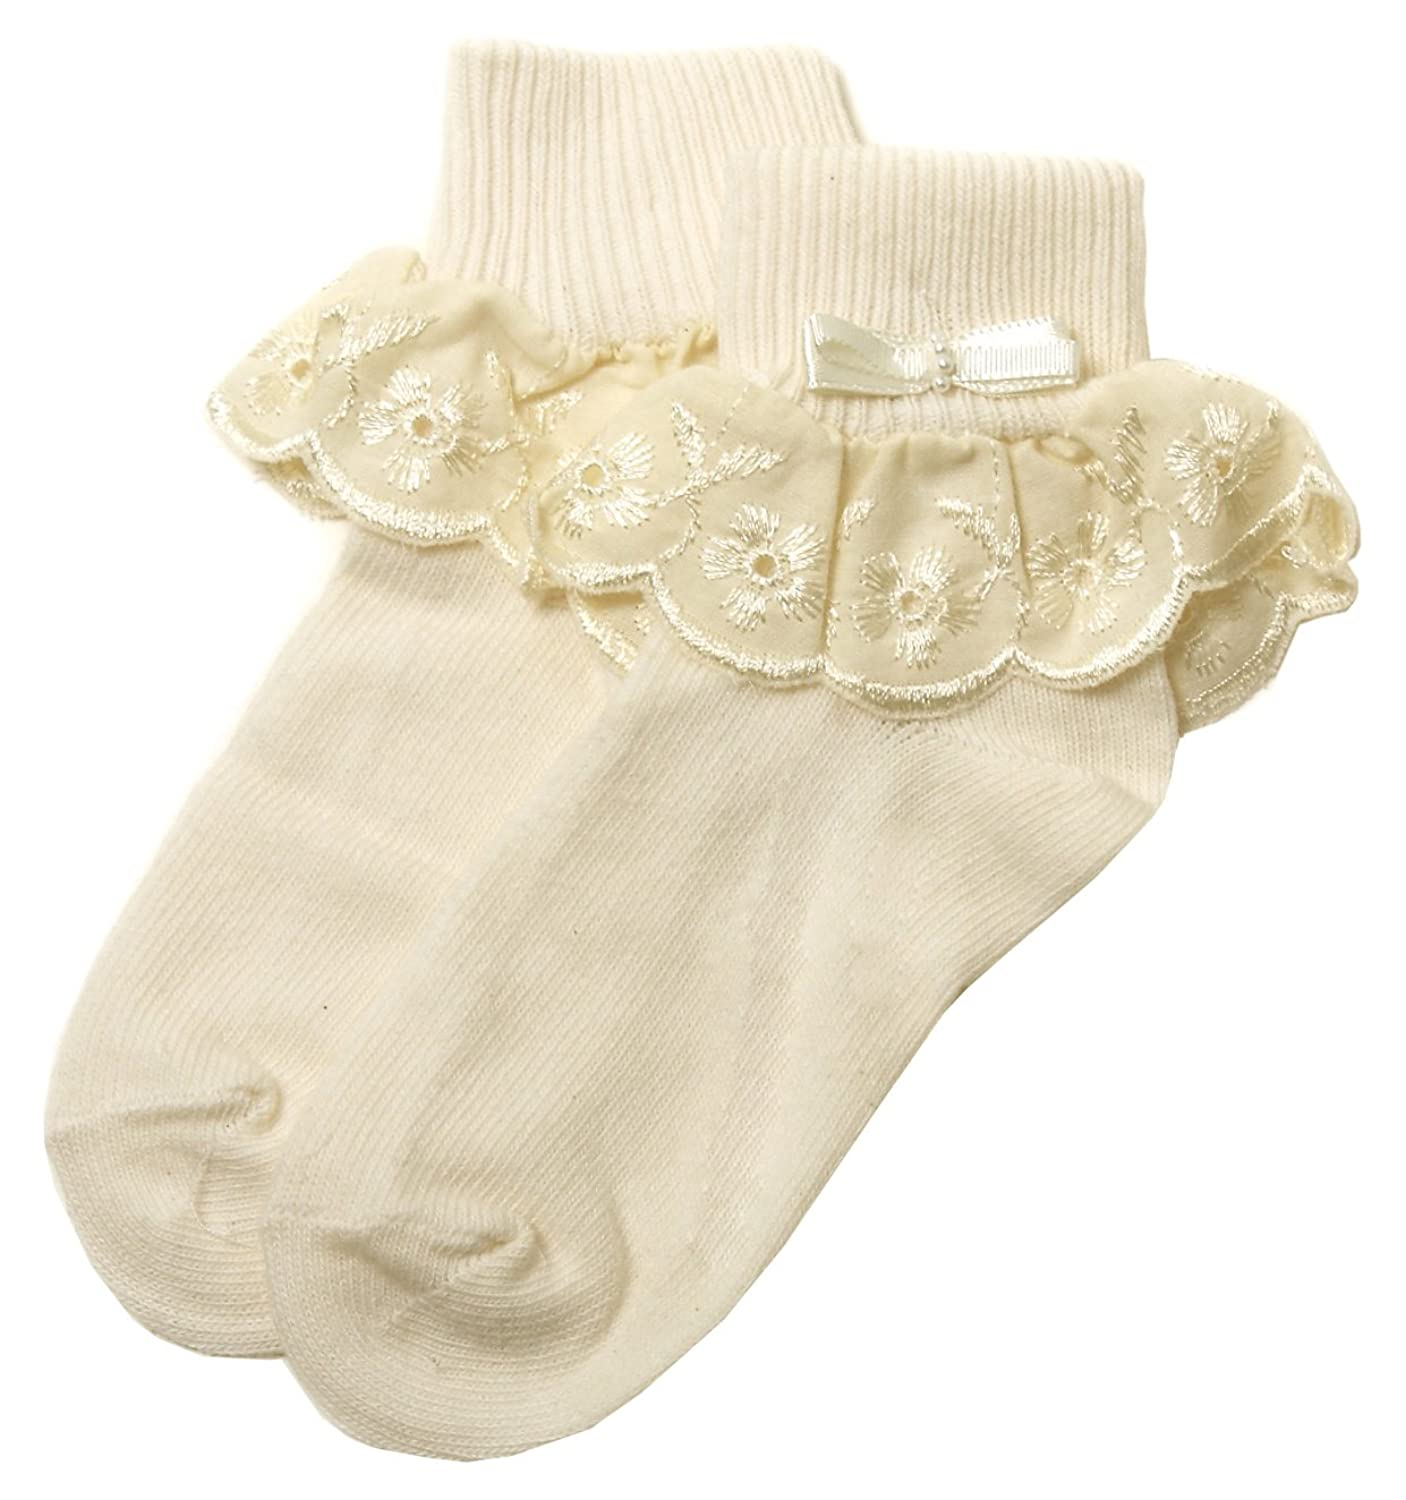 Ivory Frilly Socks Ivory Embroidered Flowers Lace For Baby And